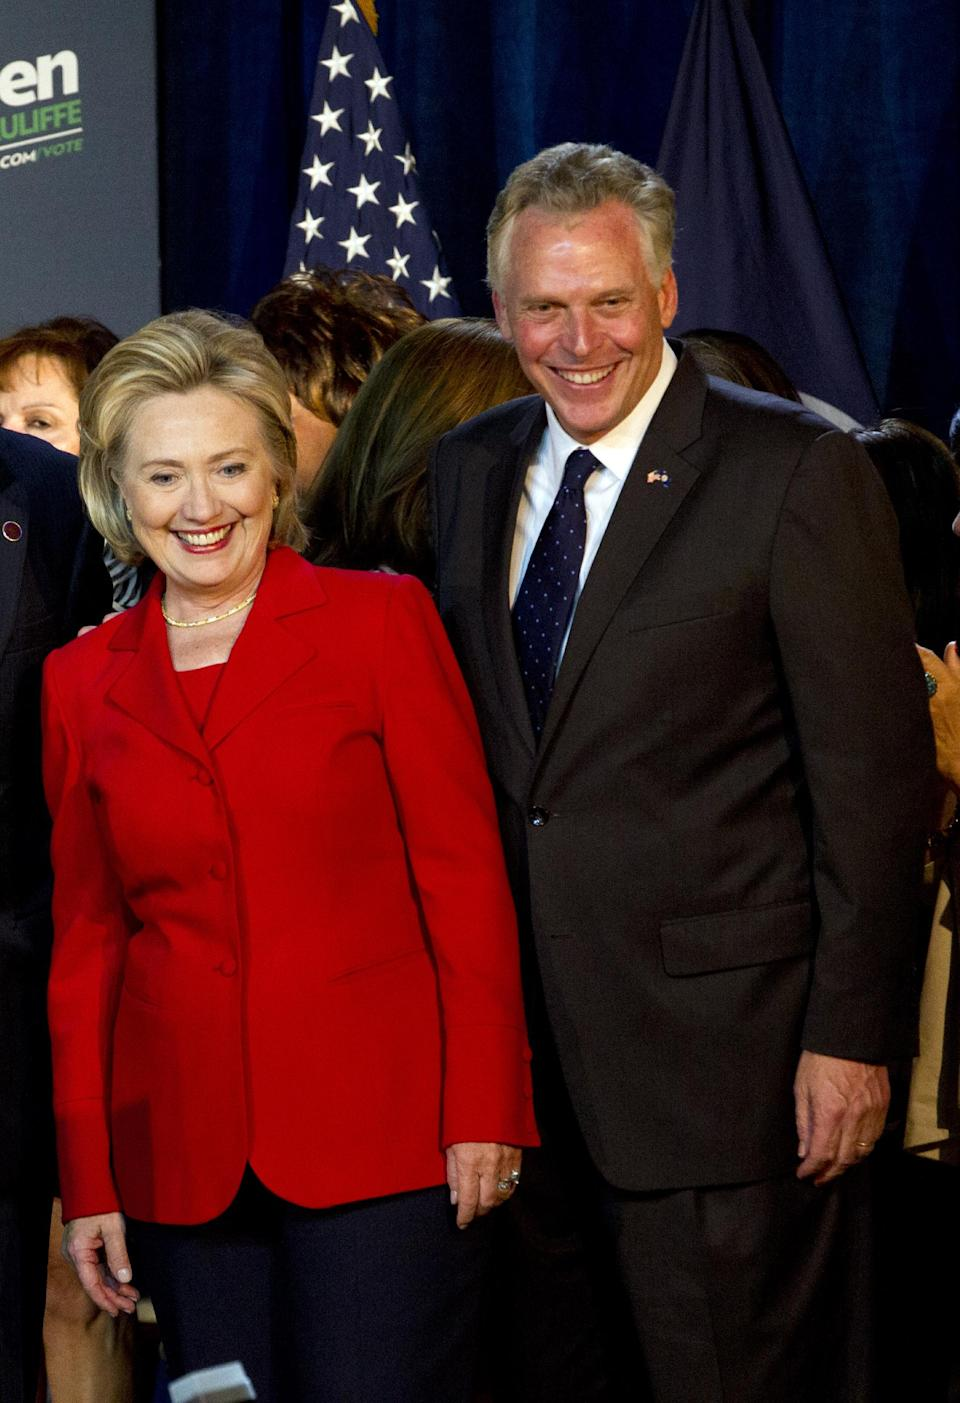 Virginia gubernatorial candidate, Democrat Terry McAuliffe, right, and former Secretary of State Hillary Rodham Clinton look to the crowd during a campaign rally, Women for Terry, at the State Theater in Falls Church, Va. on Saturday, Oct. 19, 2013. Clinton formally endorsed her family friend's bid for Virginia governor, marking her first public campaign event since departing the State Department in February. ( AP Photo/Jose Luis Magana)